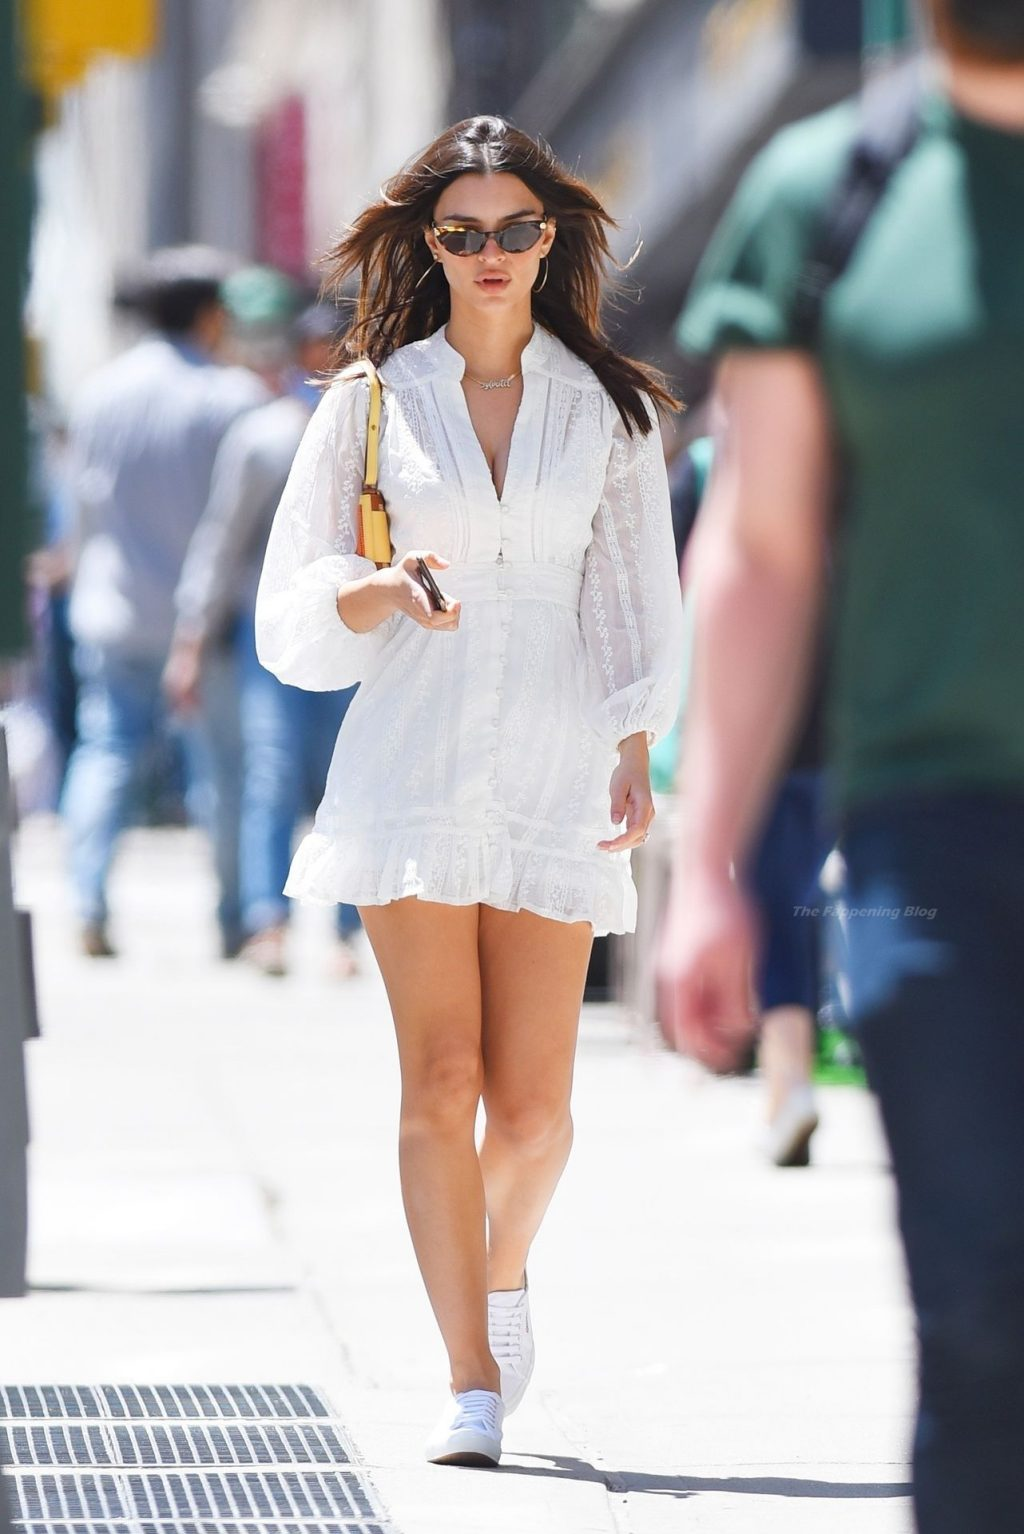 Emily Ratajkowski Looks Sexy in a White Mini Dress as She Heads Out in NYC (11 Photos)